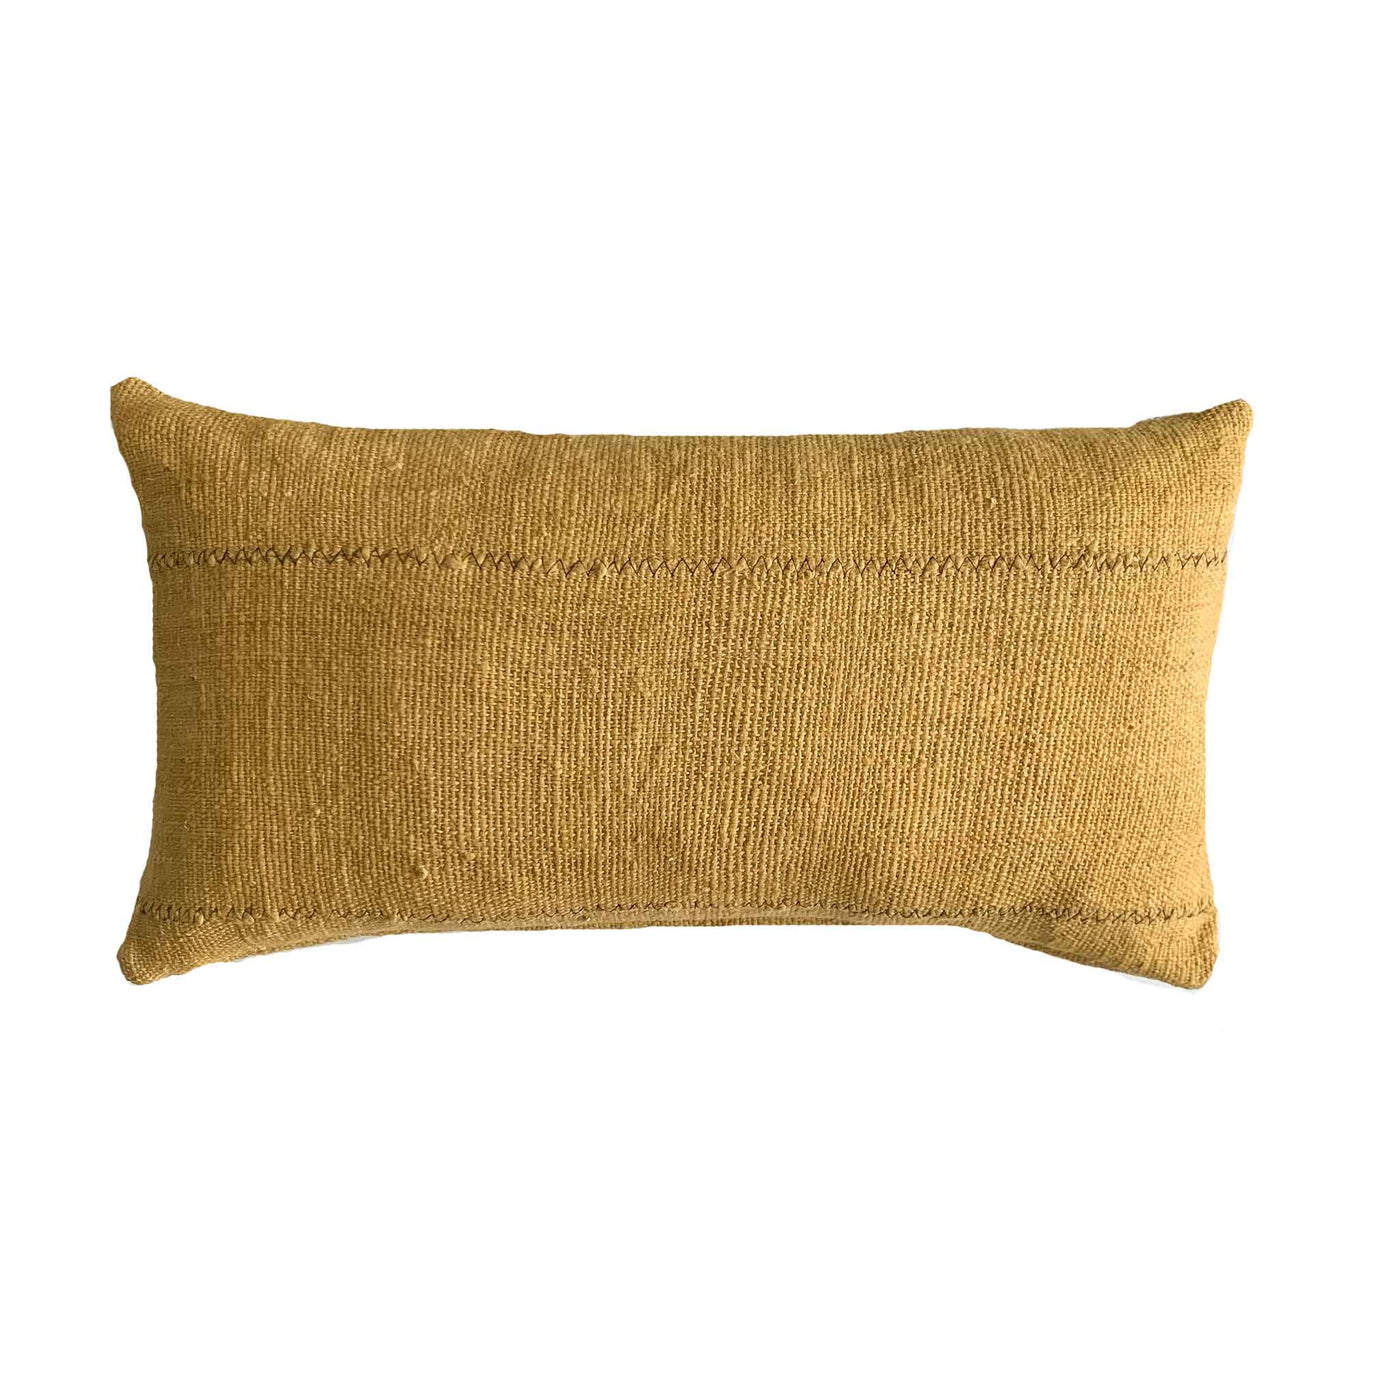 Mustard Mud Cloth Lumbar Pillows | LIMITED SUPPLY! - Studio Pillows